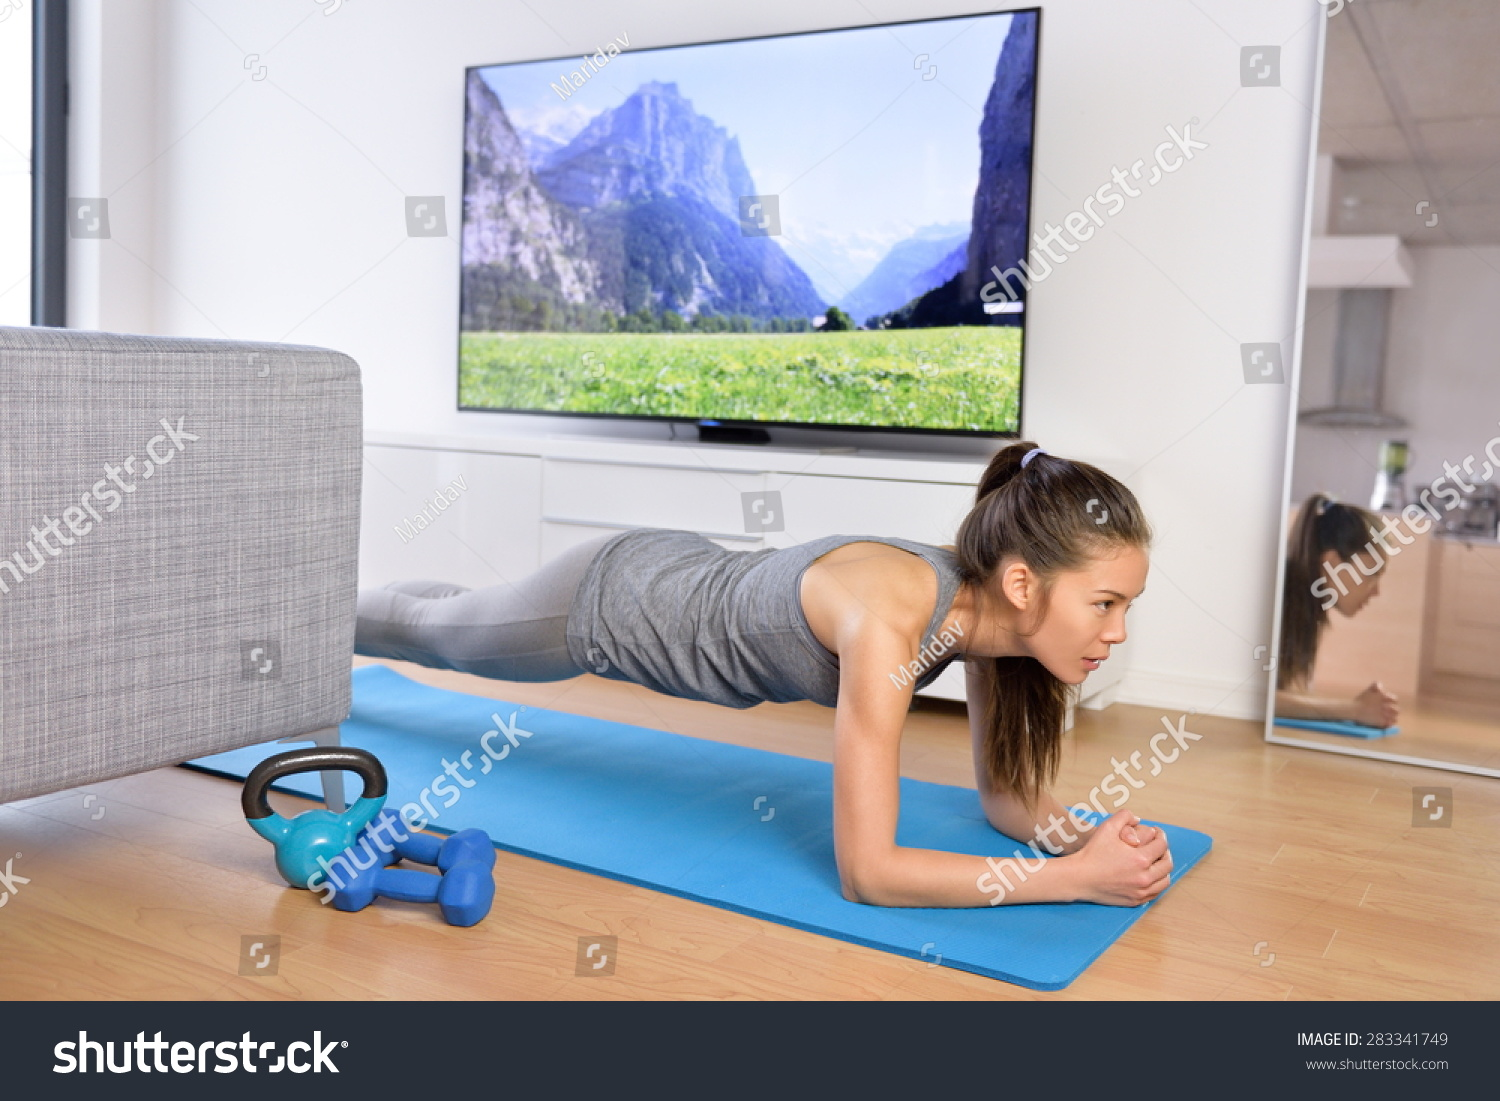 Living Room Fitness Workout